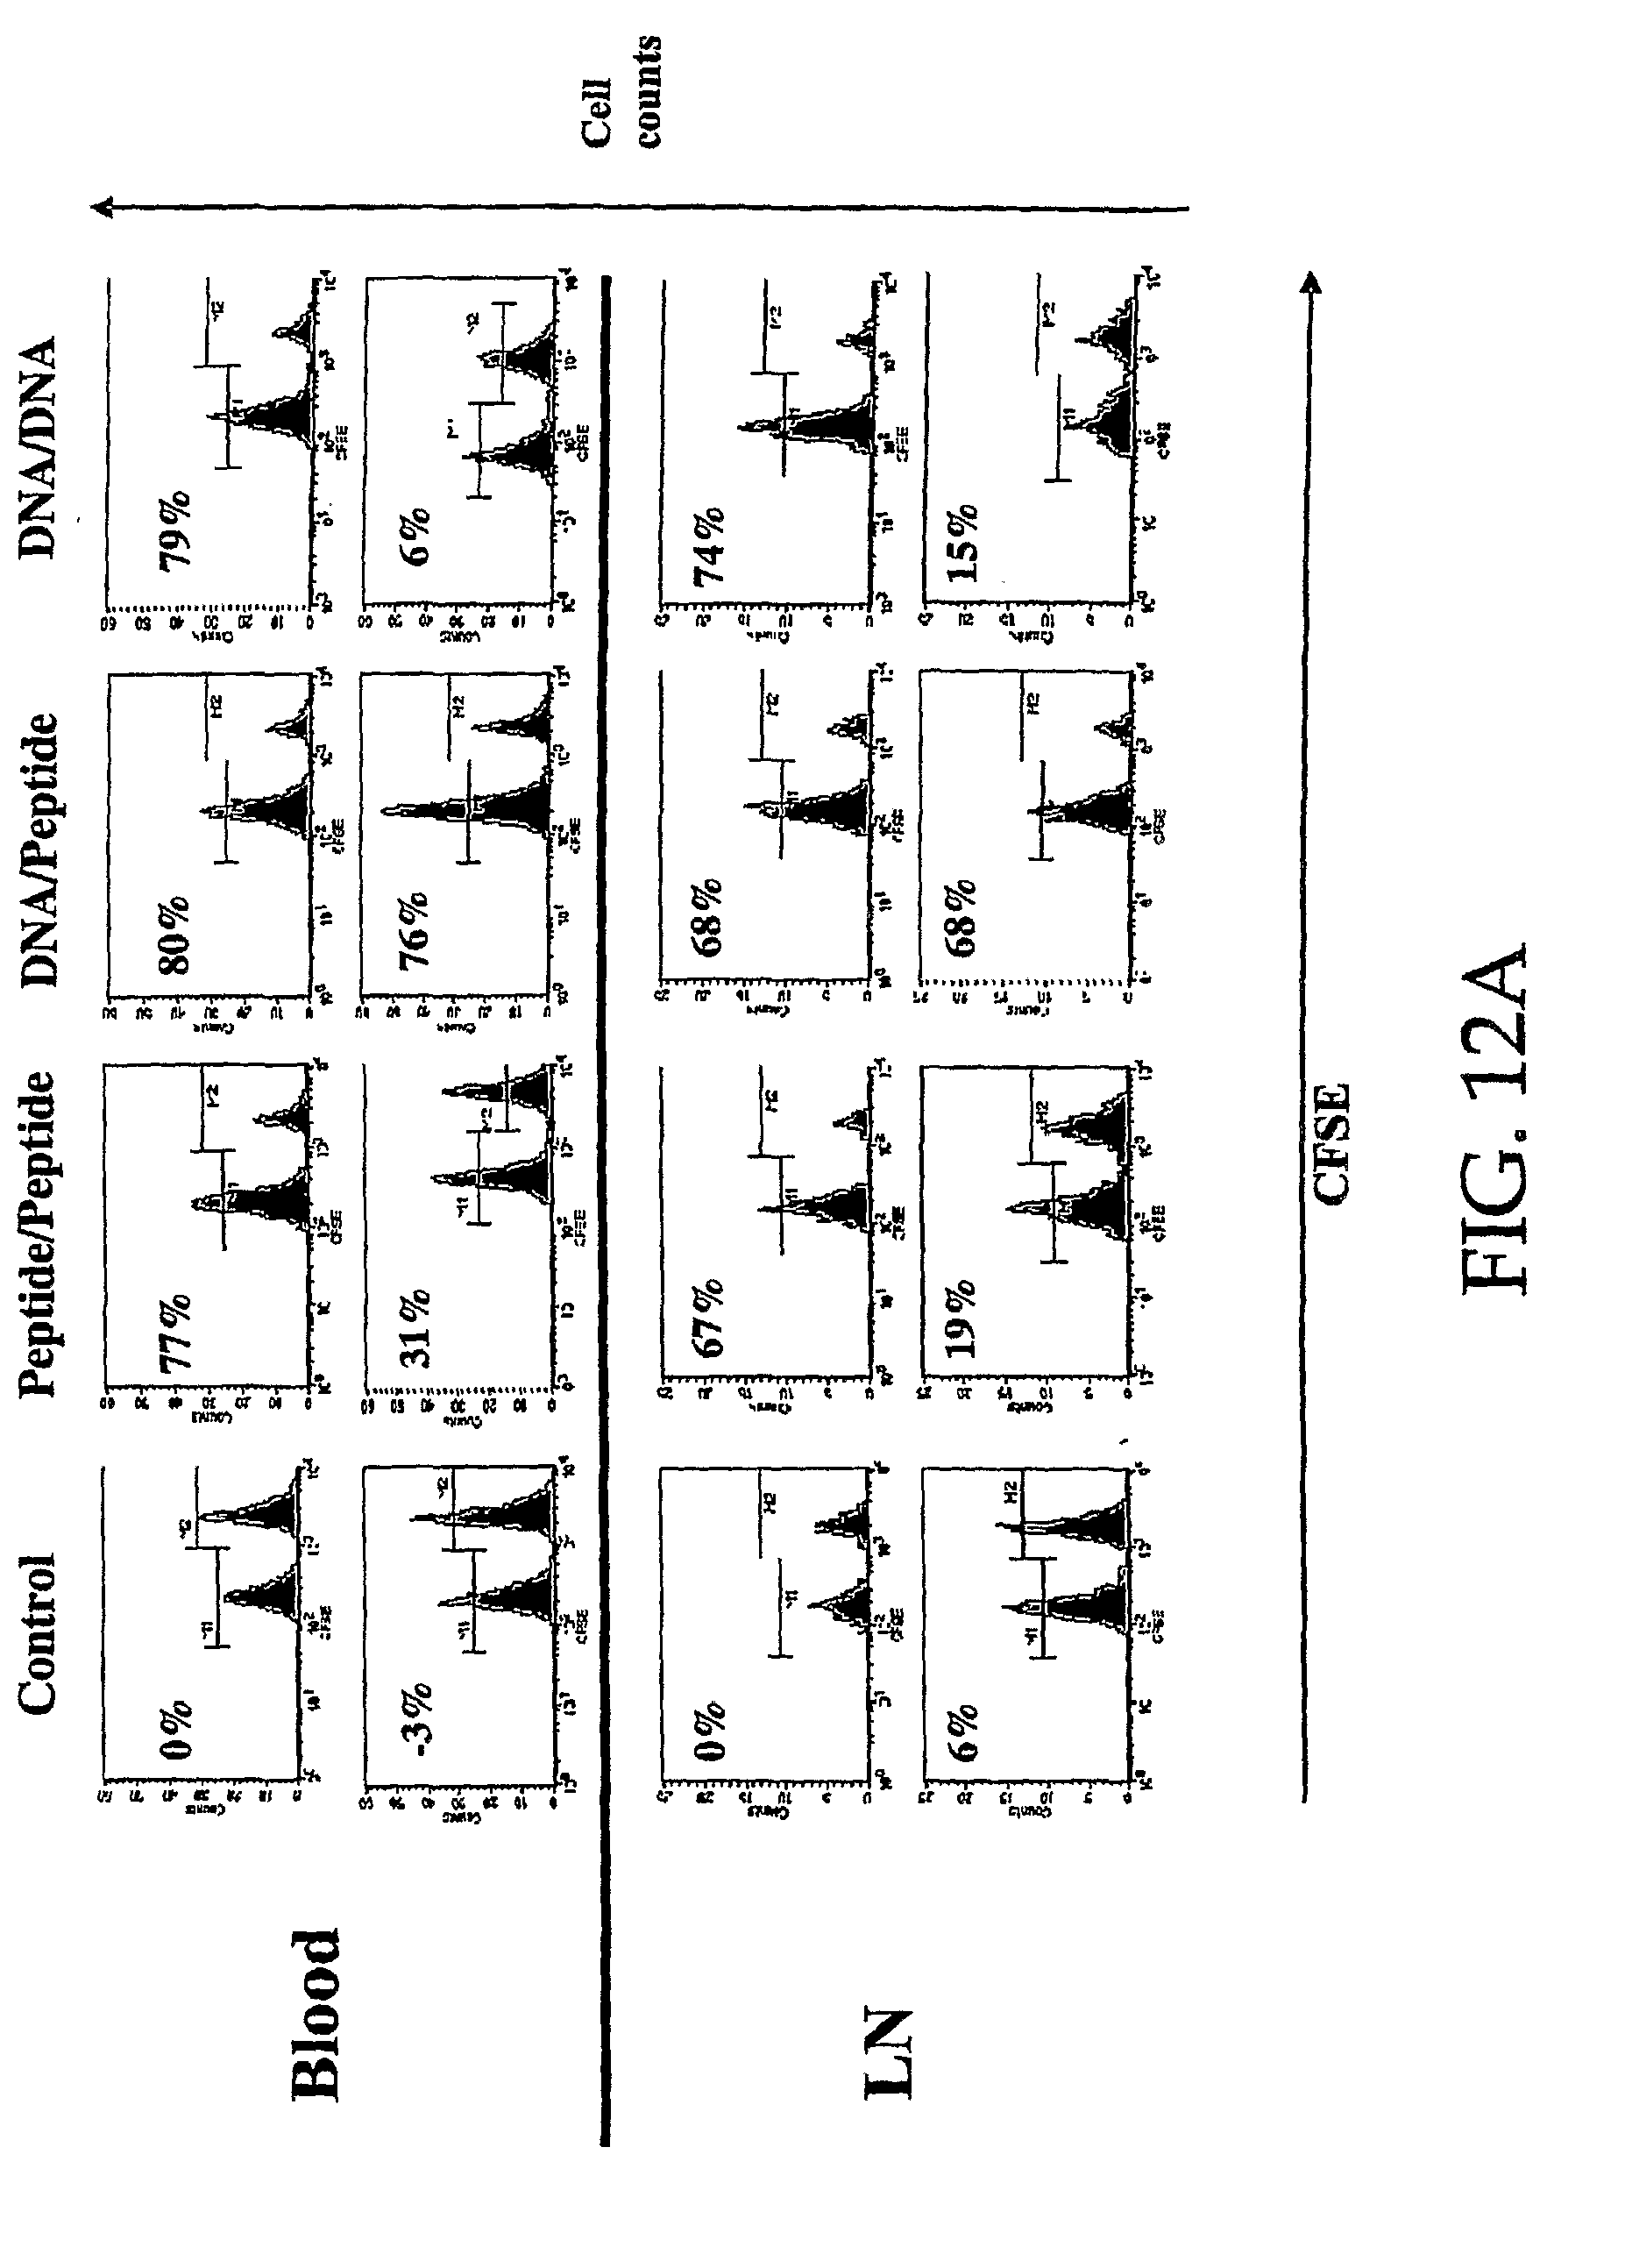 methods to elicit, enhance and sustain immune responses against